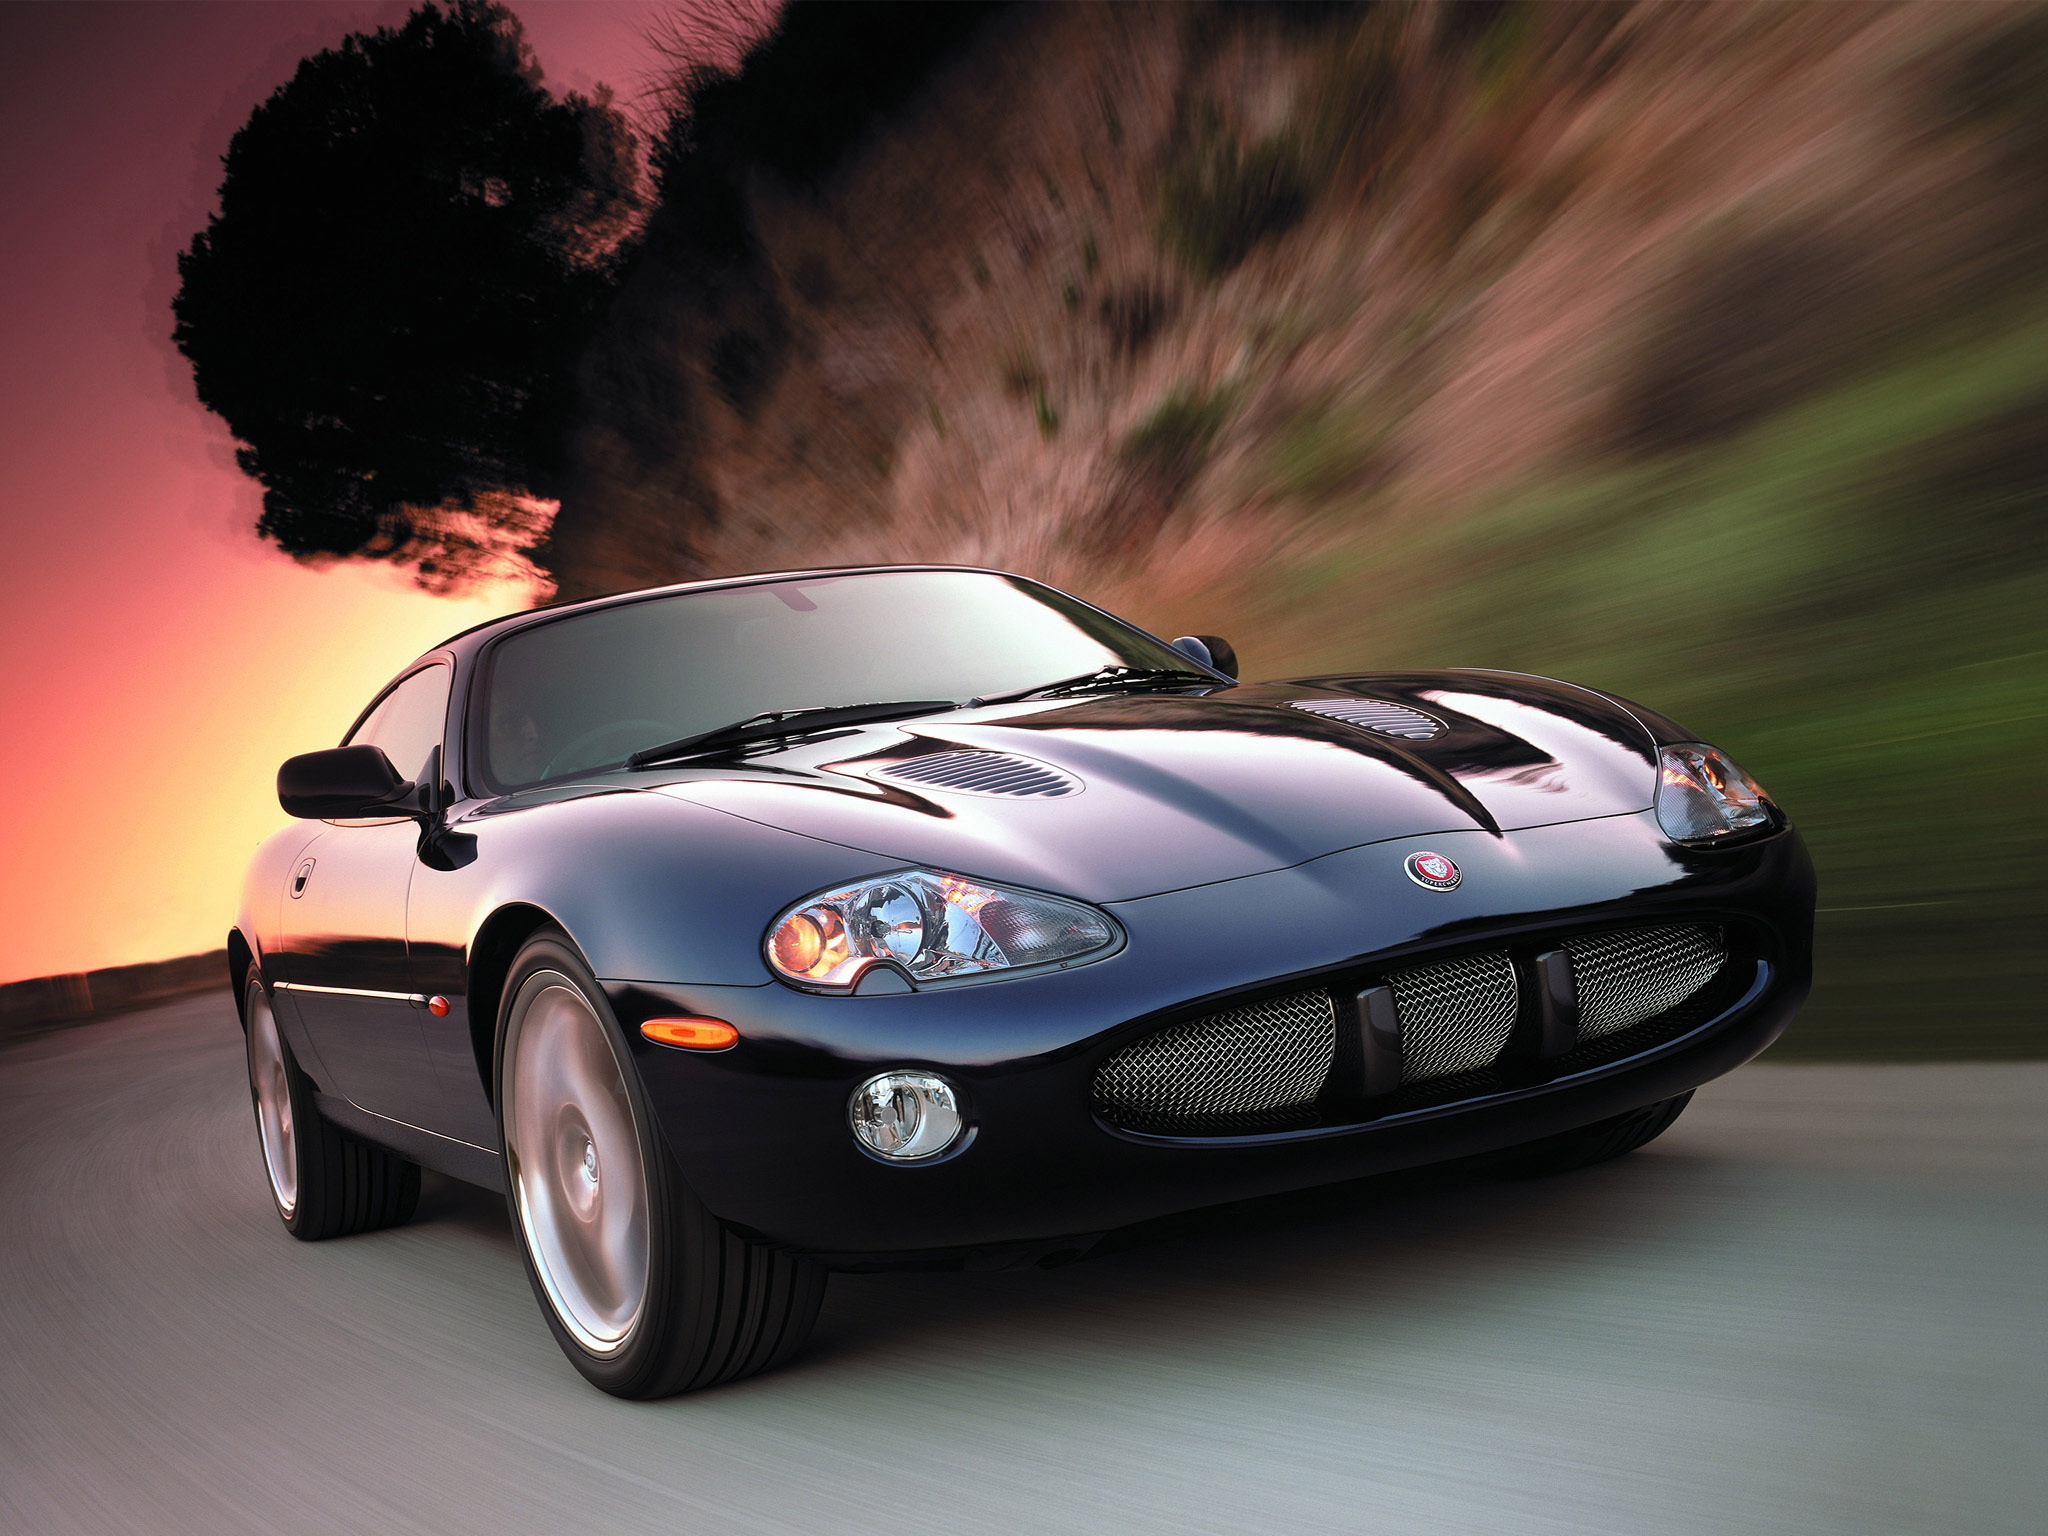 1998 Jaguar XKR coupé is one of many cheap cars that will get you laid